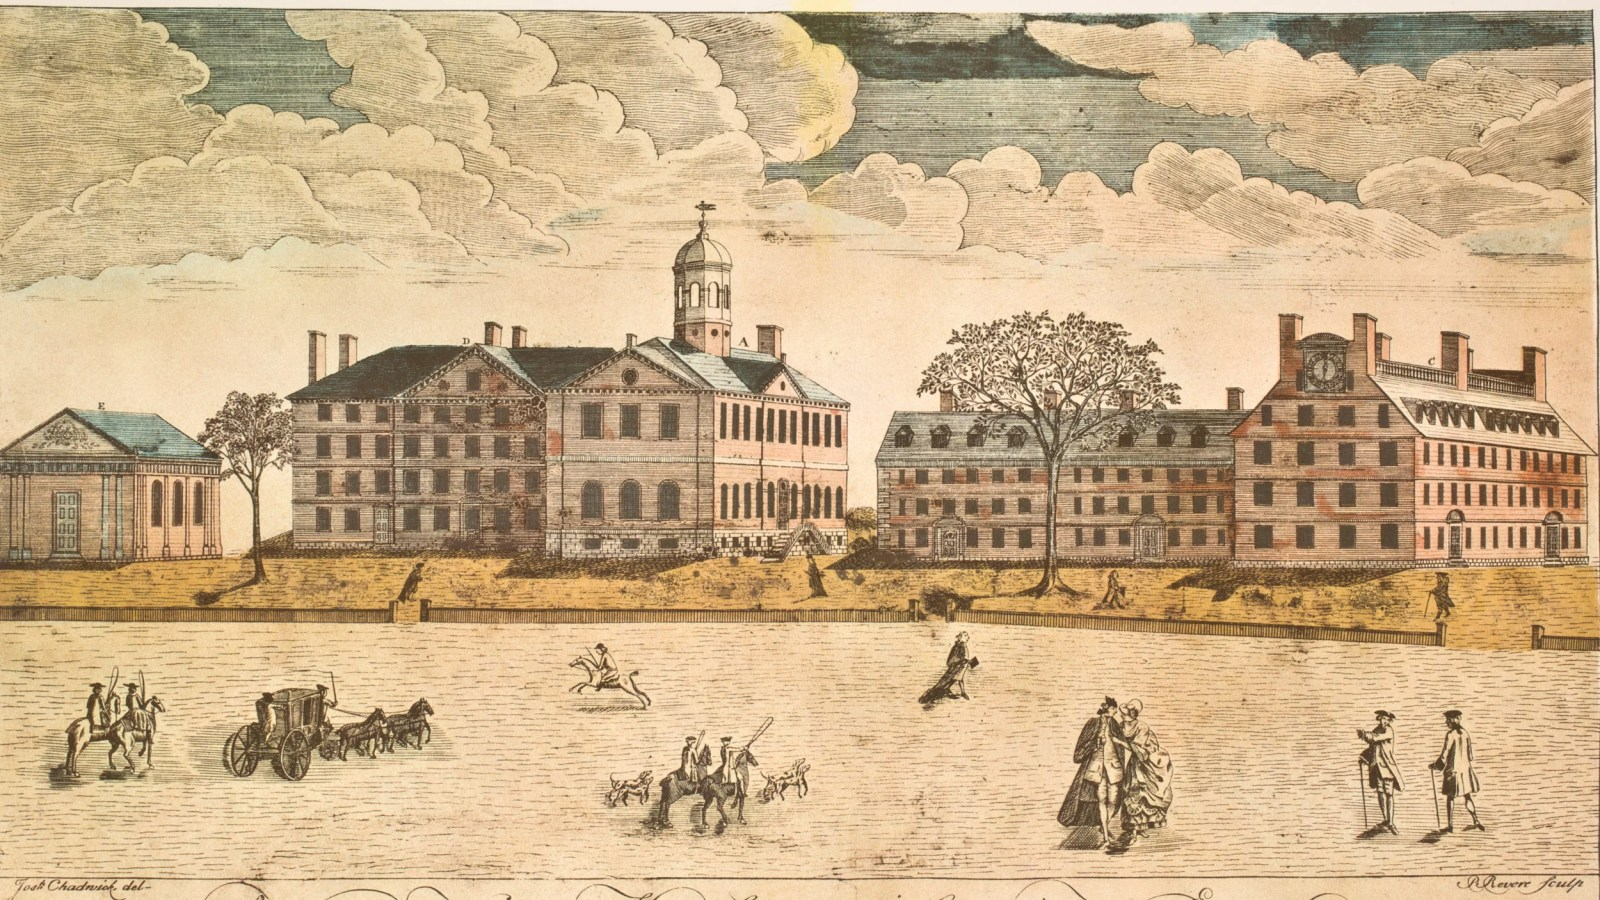 Westerly view of the Colledges in Cambridge, New England, Paul Revere, 1767.